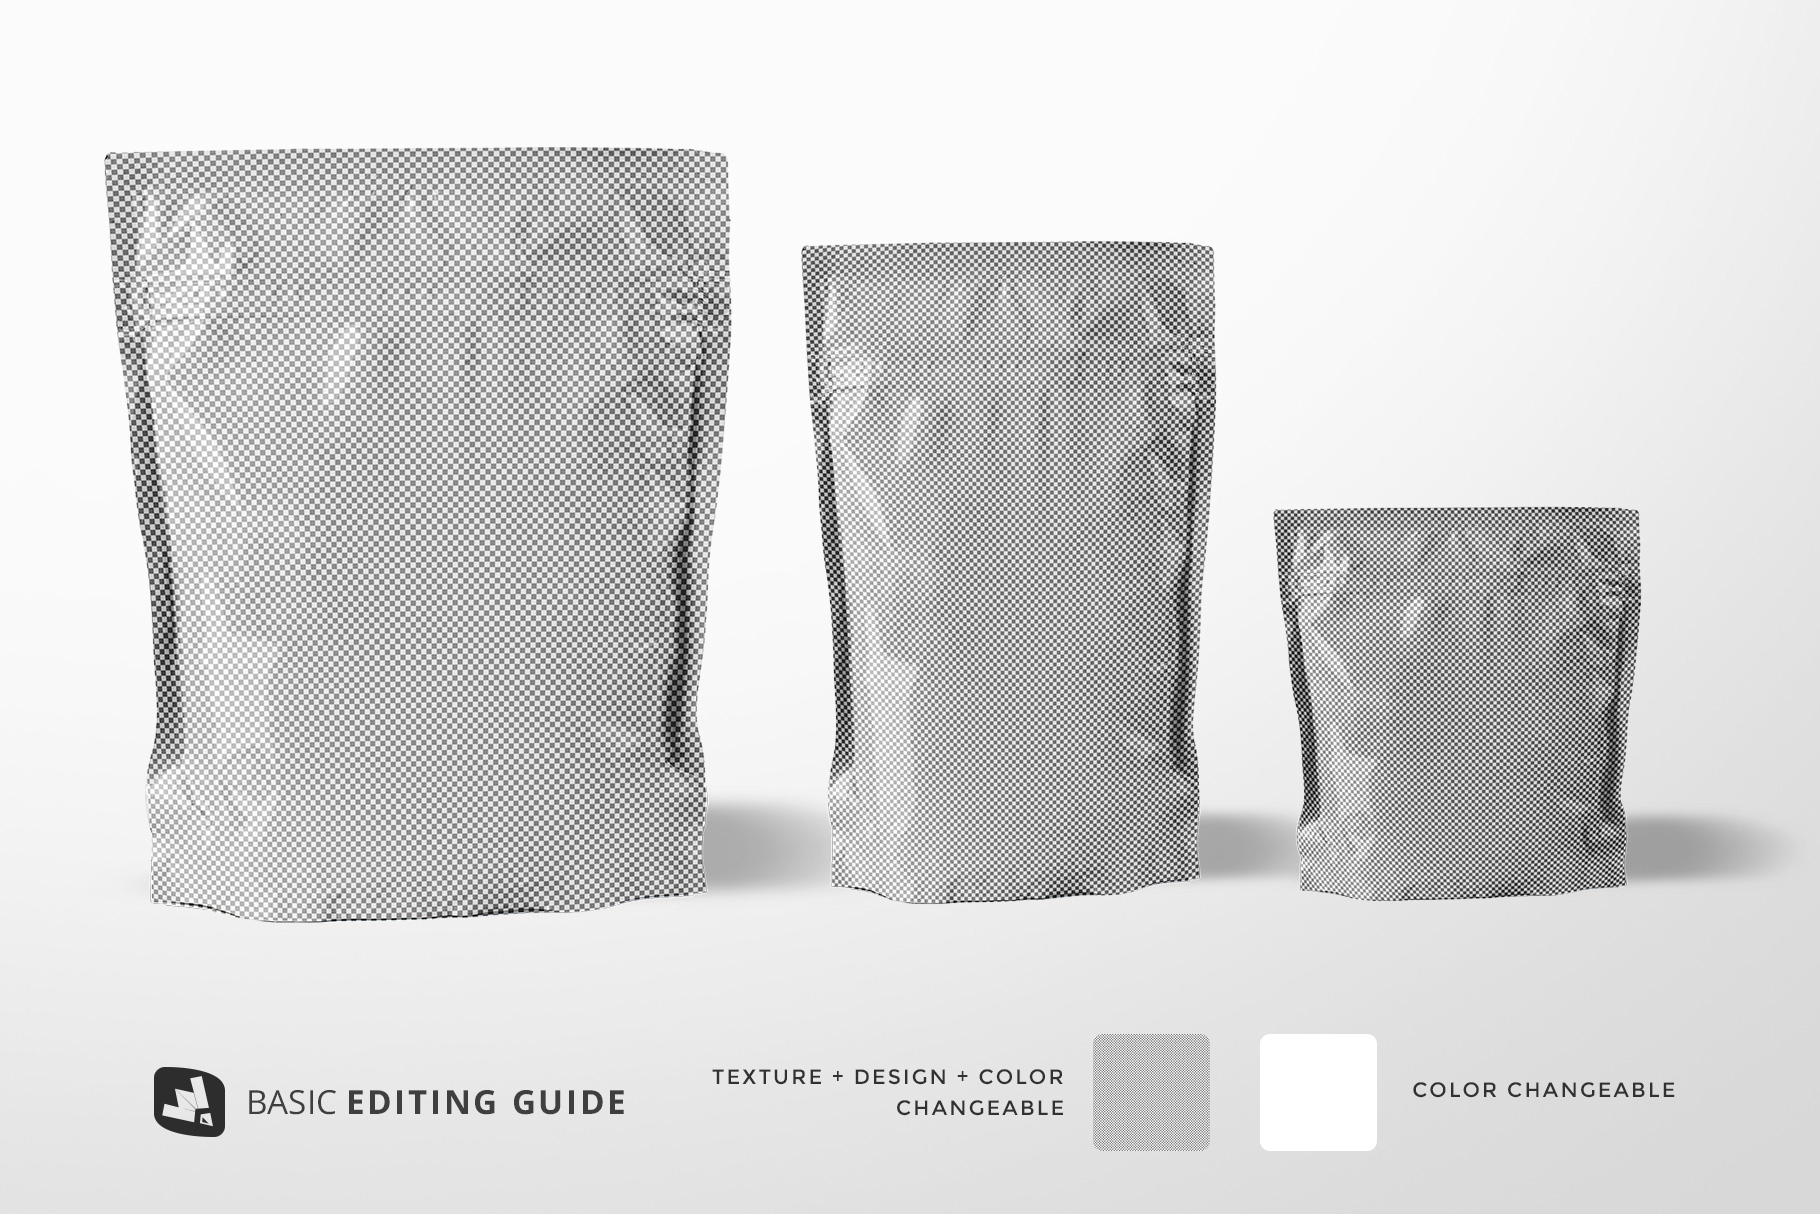 editablity of the flexible food pouch packaging mockup